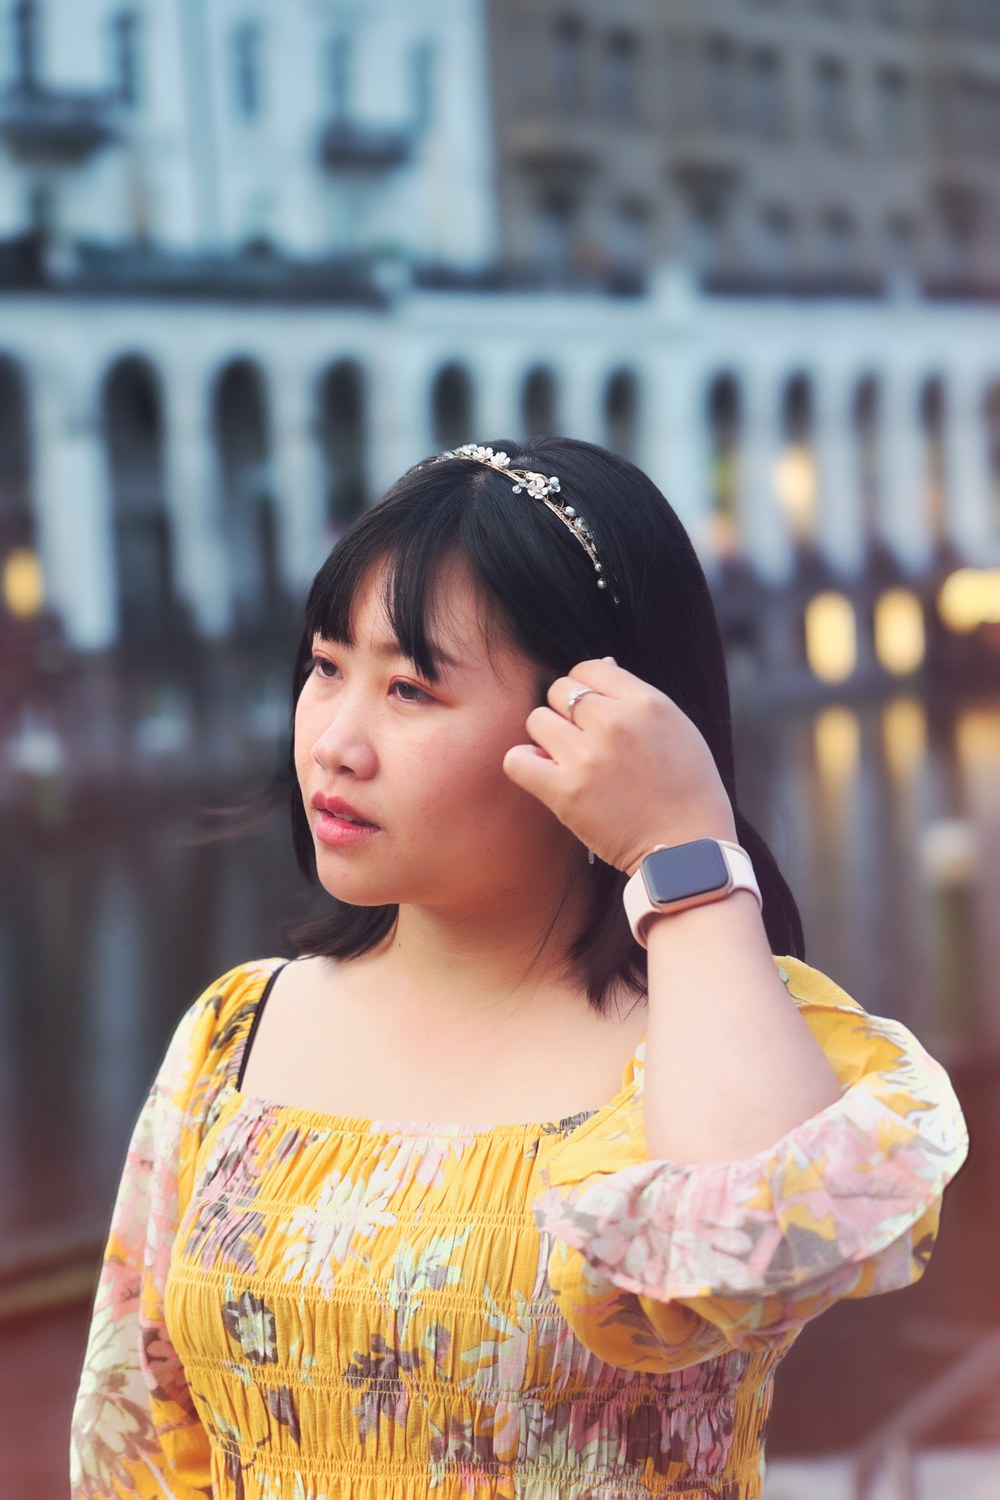 woman in yellow and white floral dress wearing white and gold watch